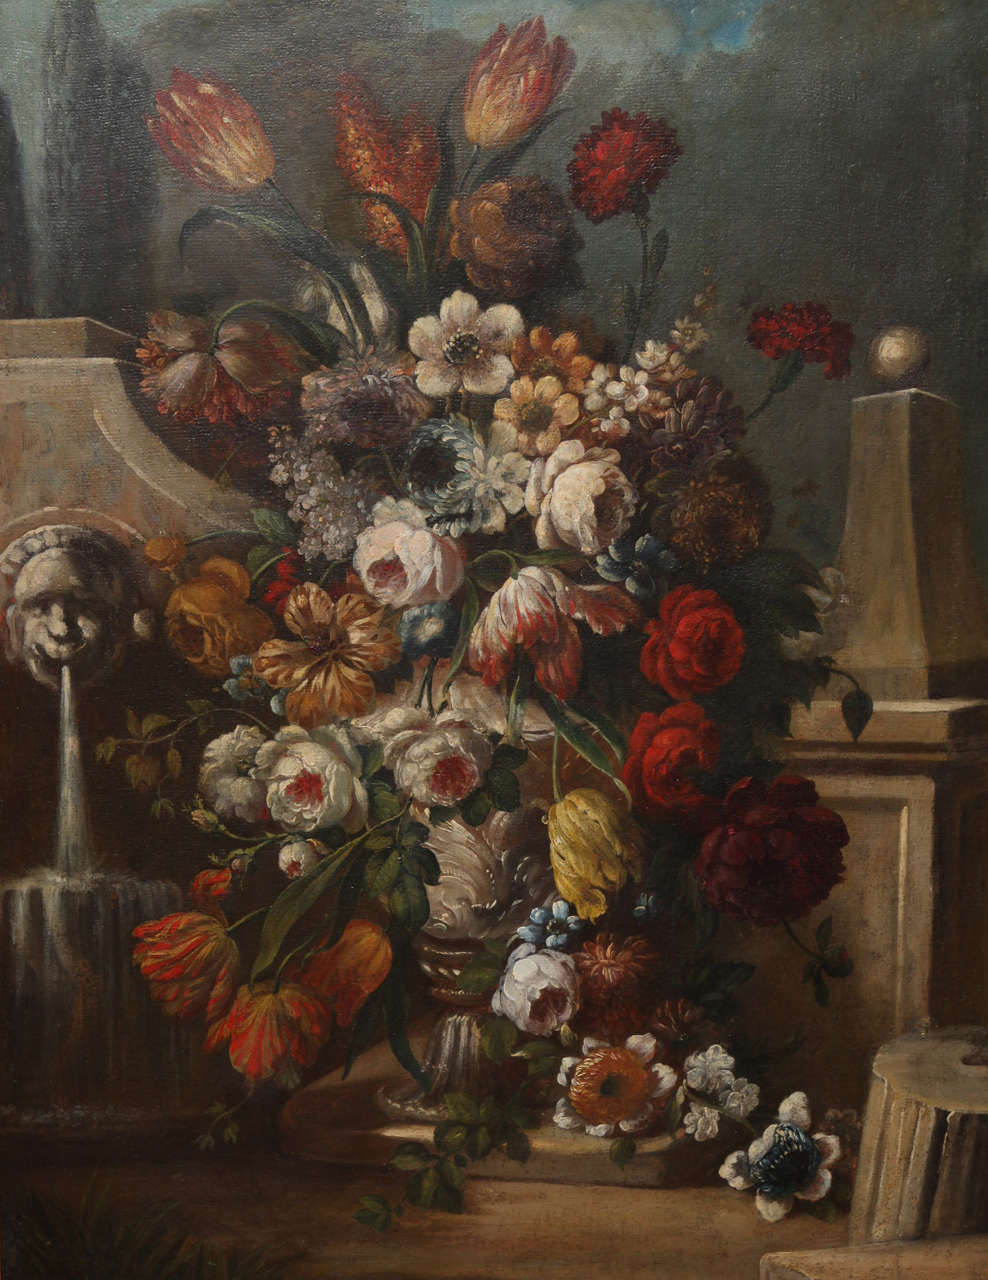 Rococo Pair of Still Life Paintings of Flowers, French, 18th Century, Original Frames For Sale